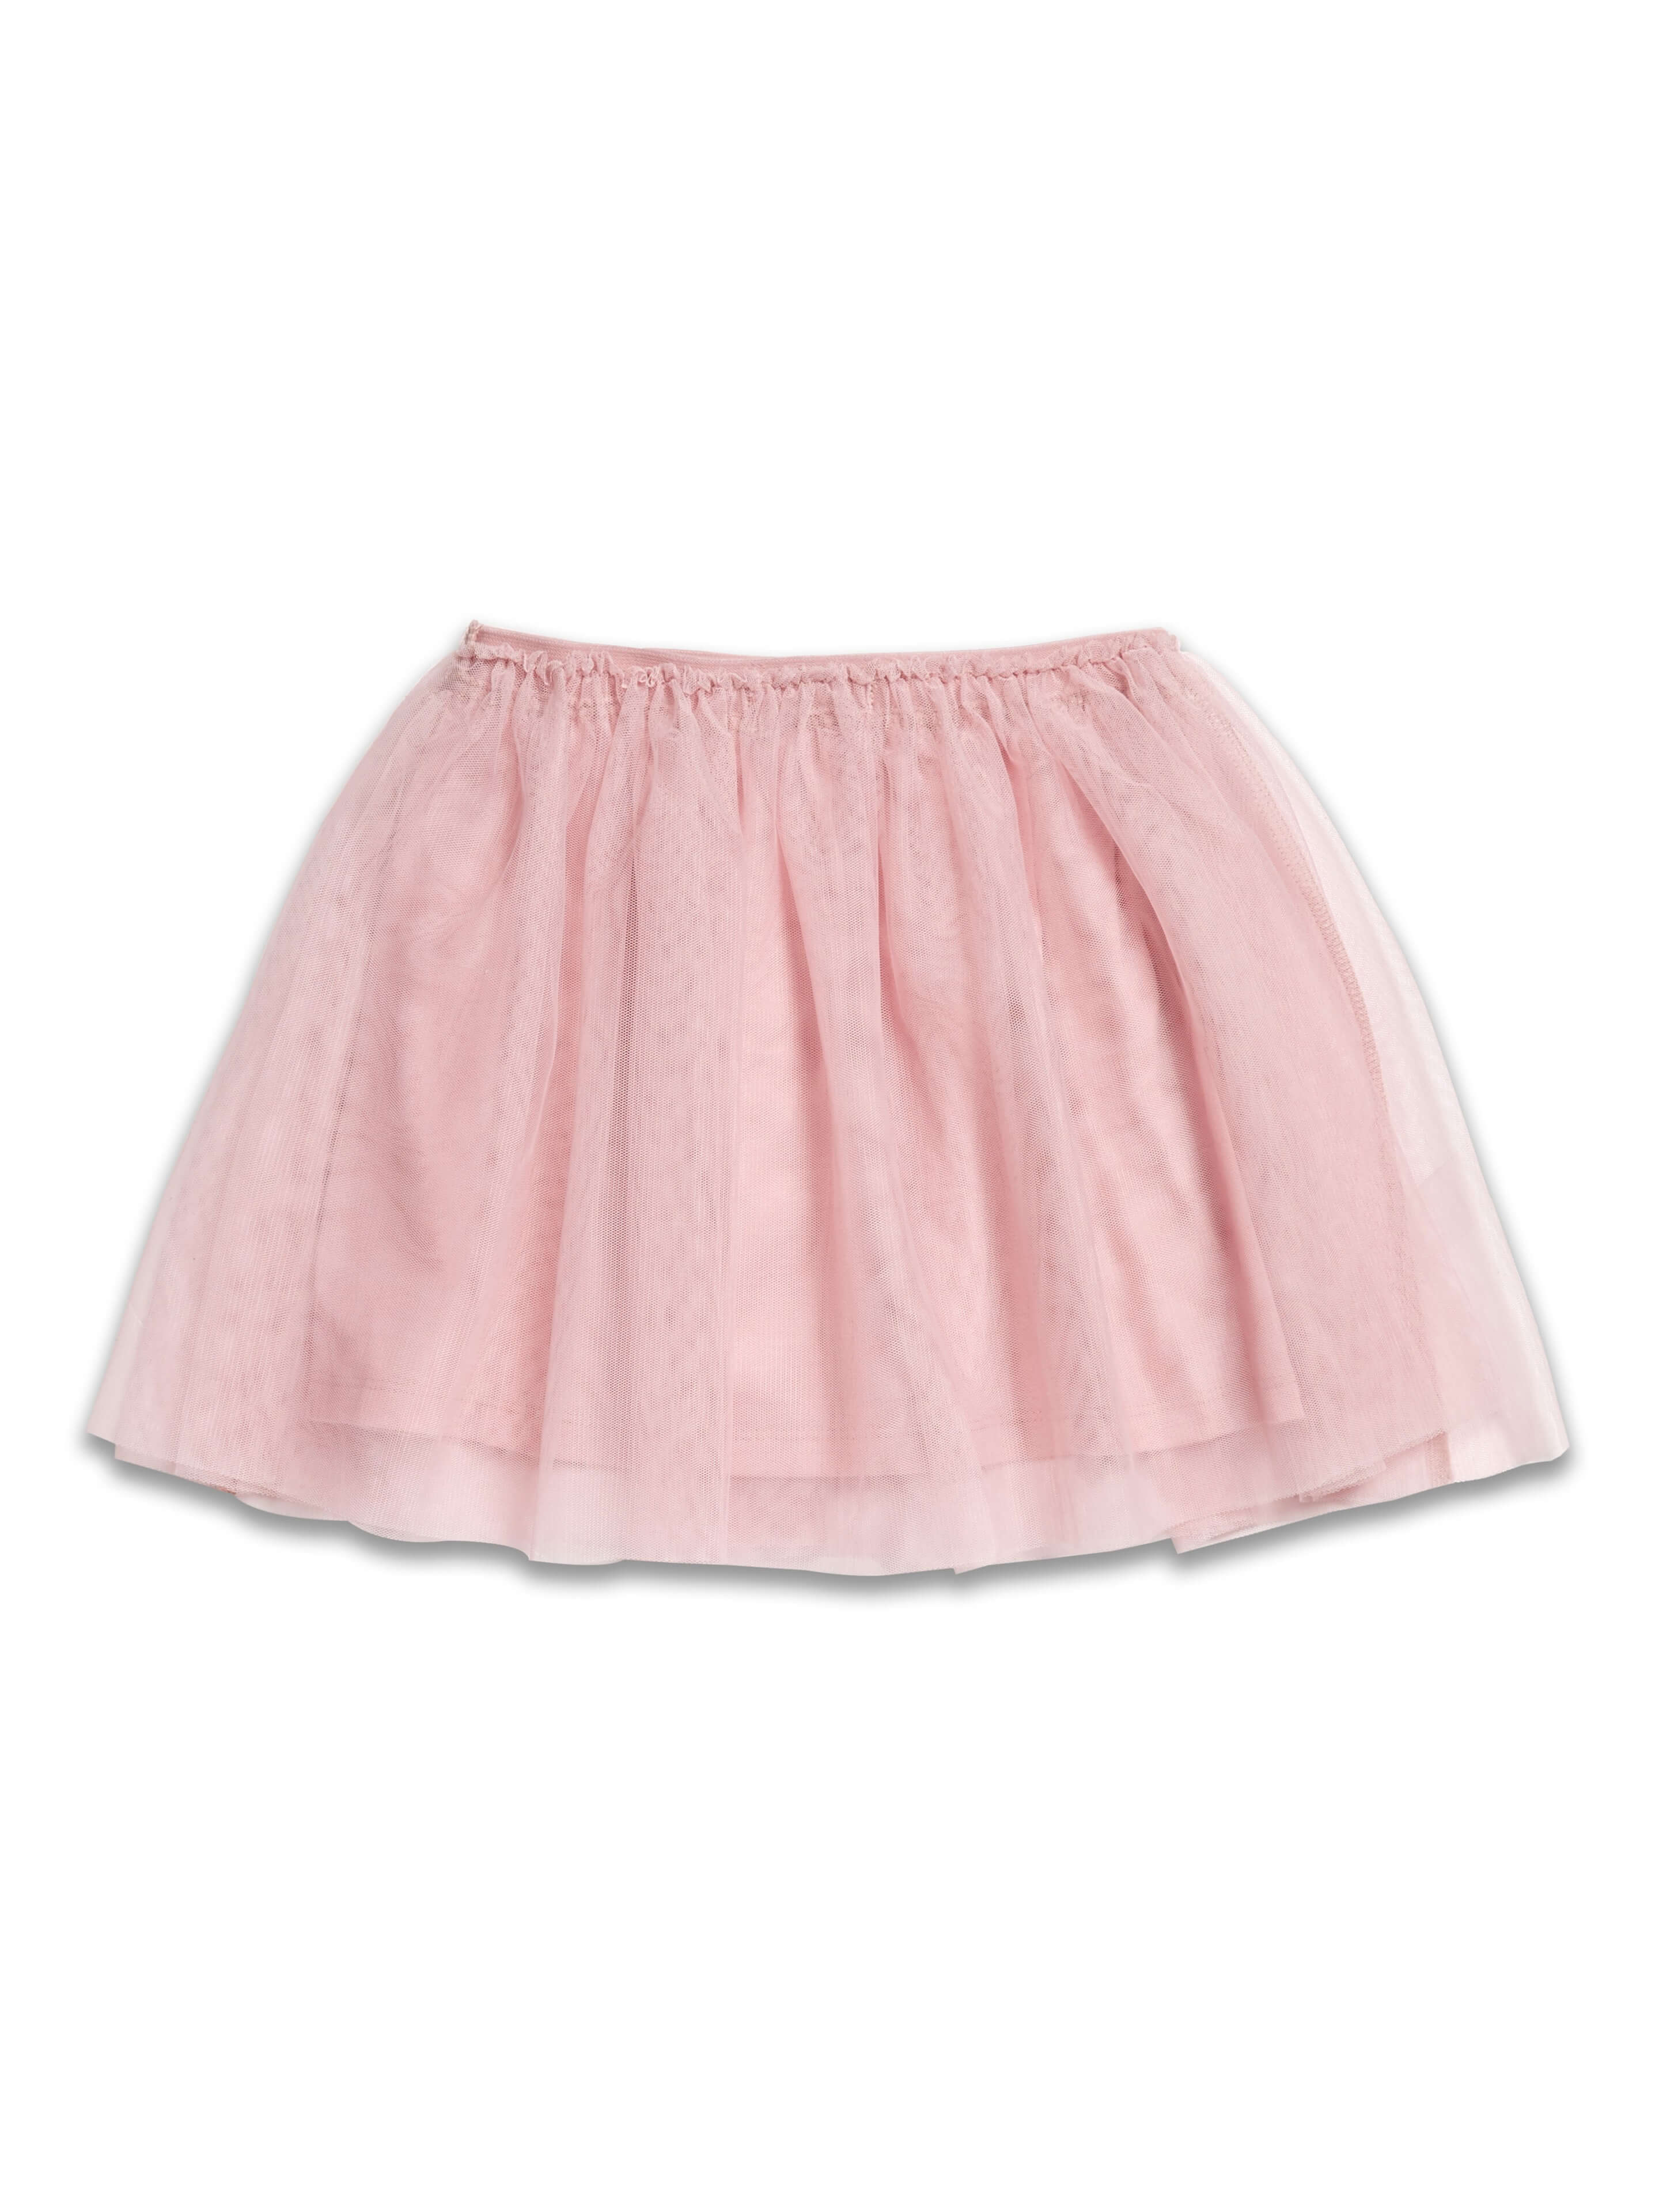 Itty Bitty Pink Girls Skirt Baby Boutique Clothing